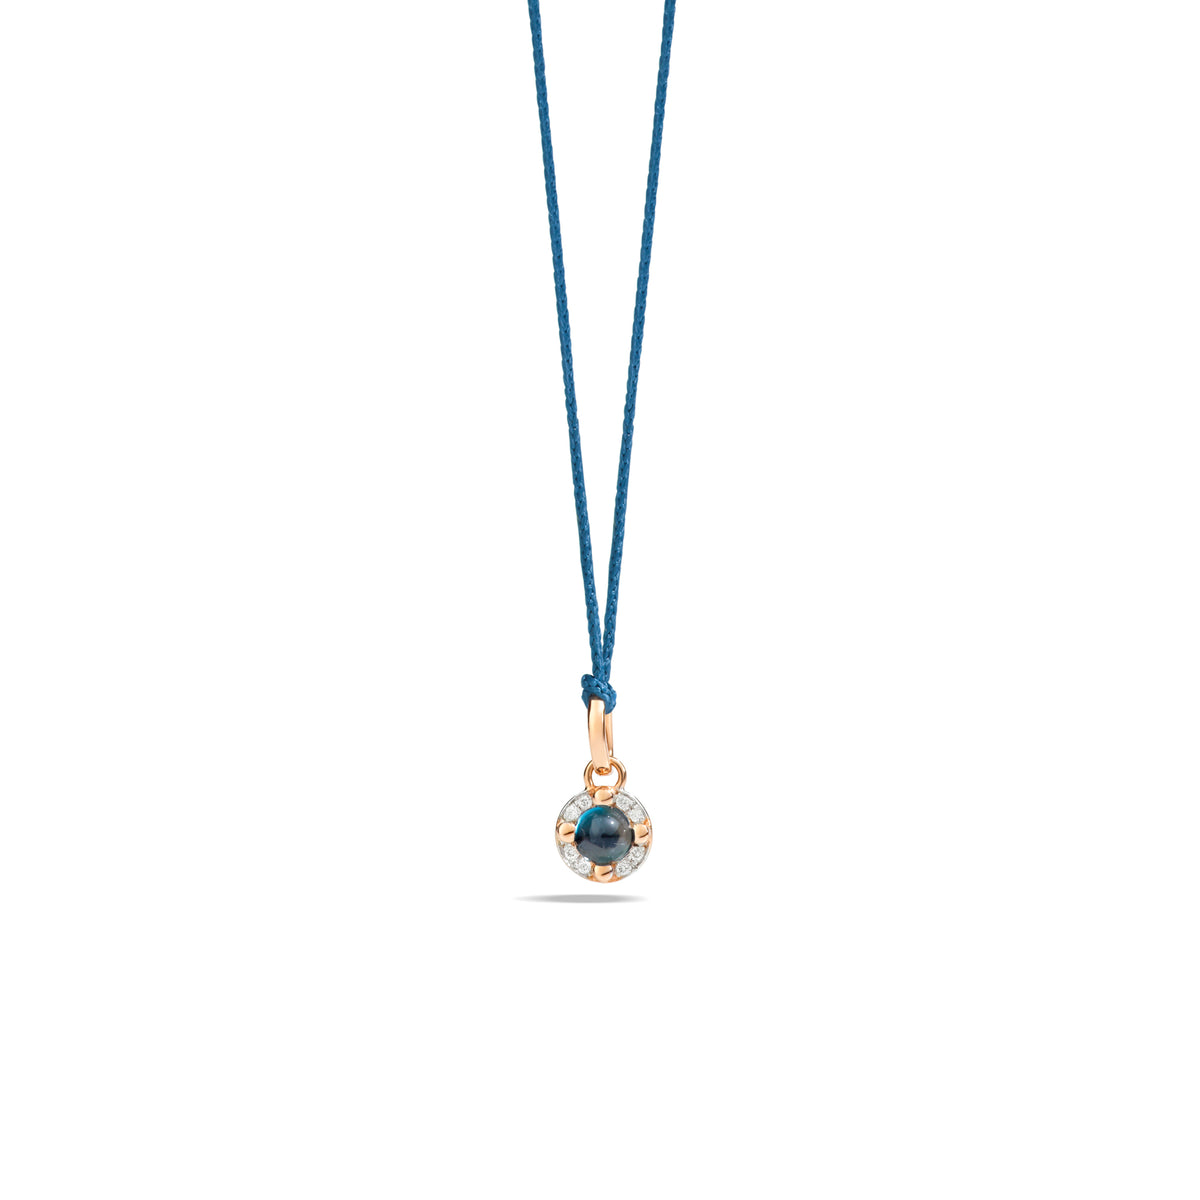 M'ama non M'ama Pendant in 18k Rose Gold with London Blue Topaz and Diamonds - Orsini Jewellers NZ